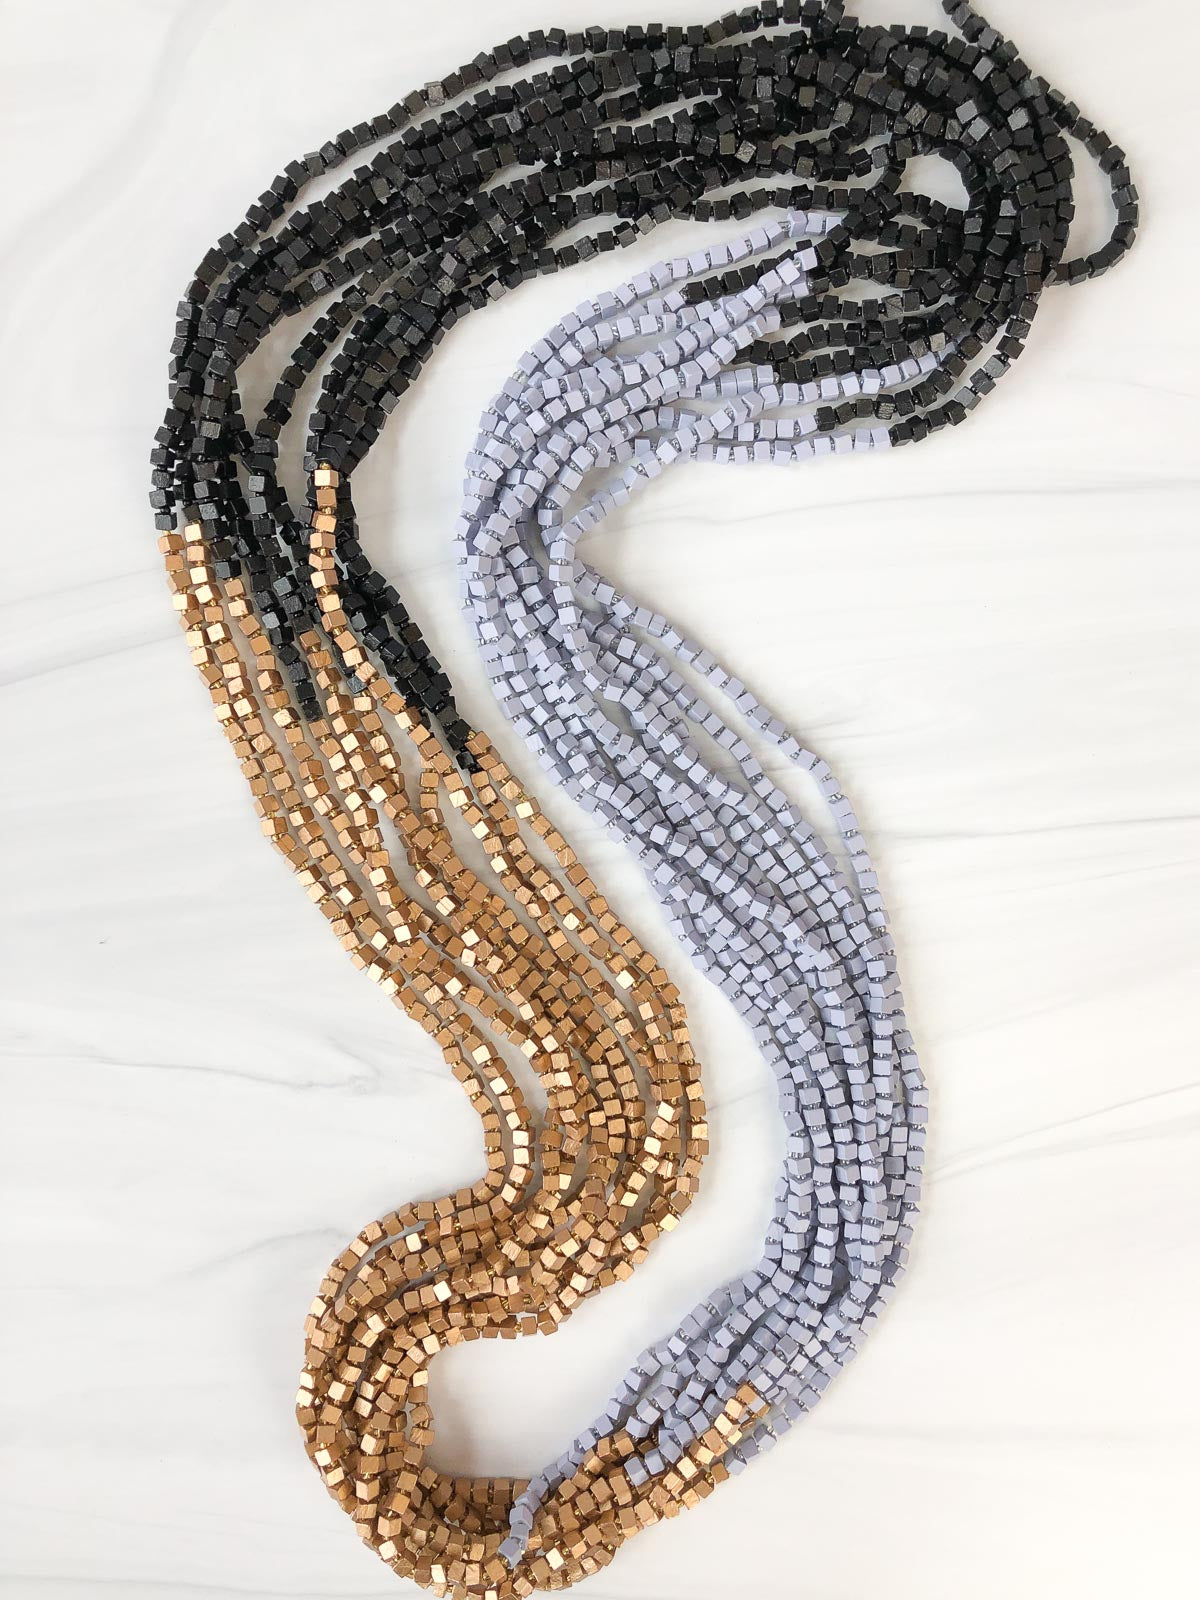 Jianhui London Colorblocked The Next Pashmina Beaded Necklace, Black/Lilac Grey/New Gold